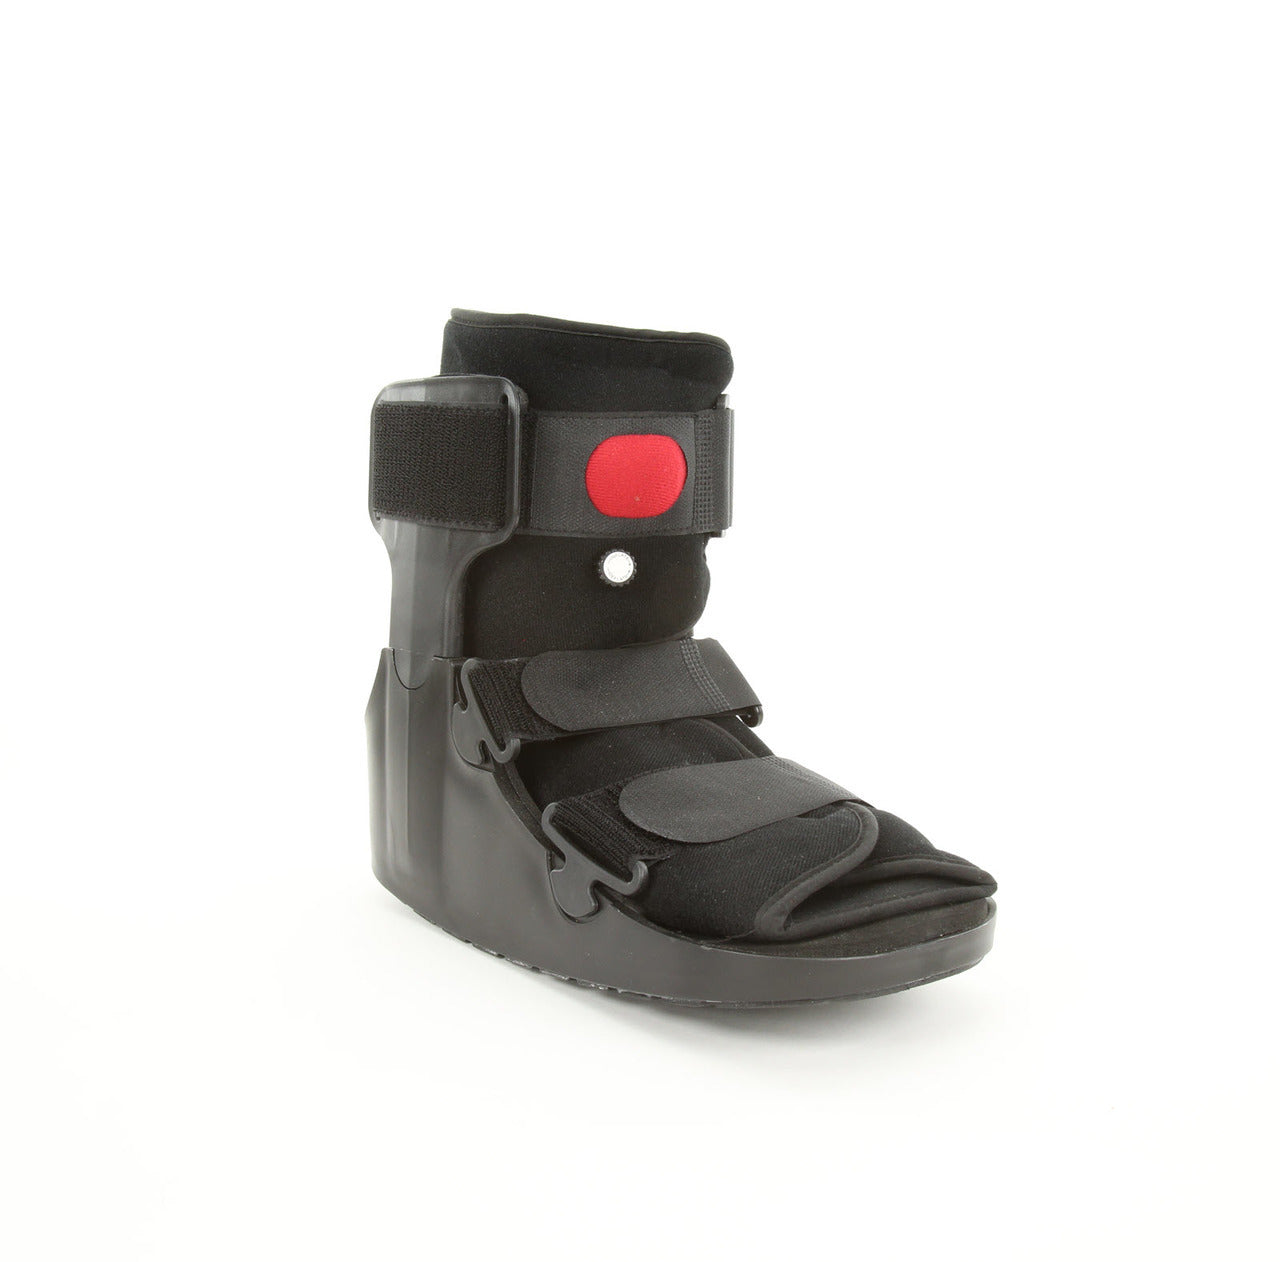 a3054e61a6 Low Top Air Walker Boot - The Orthopedic Guys Warehouse